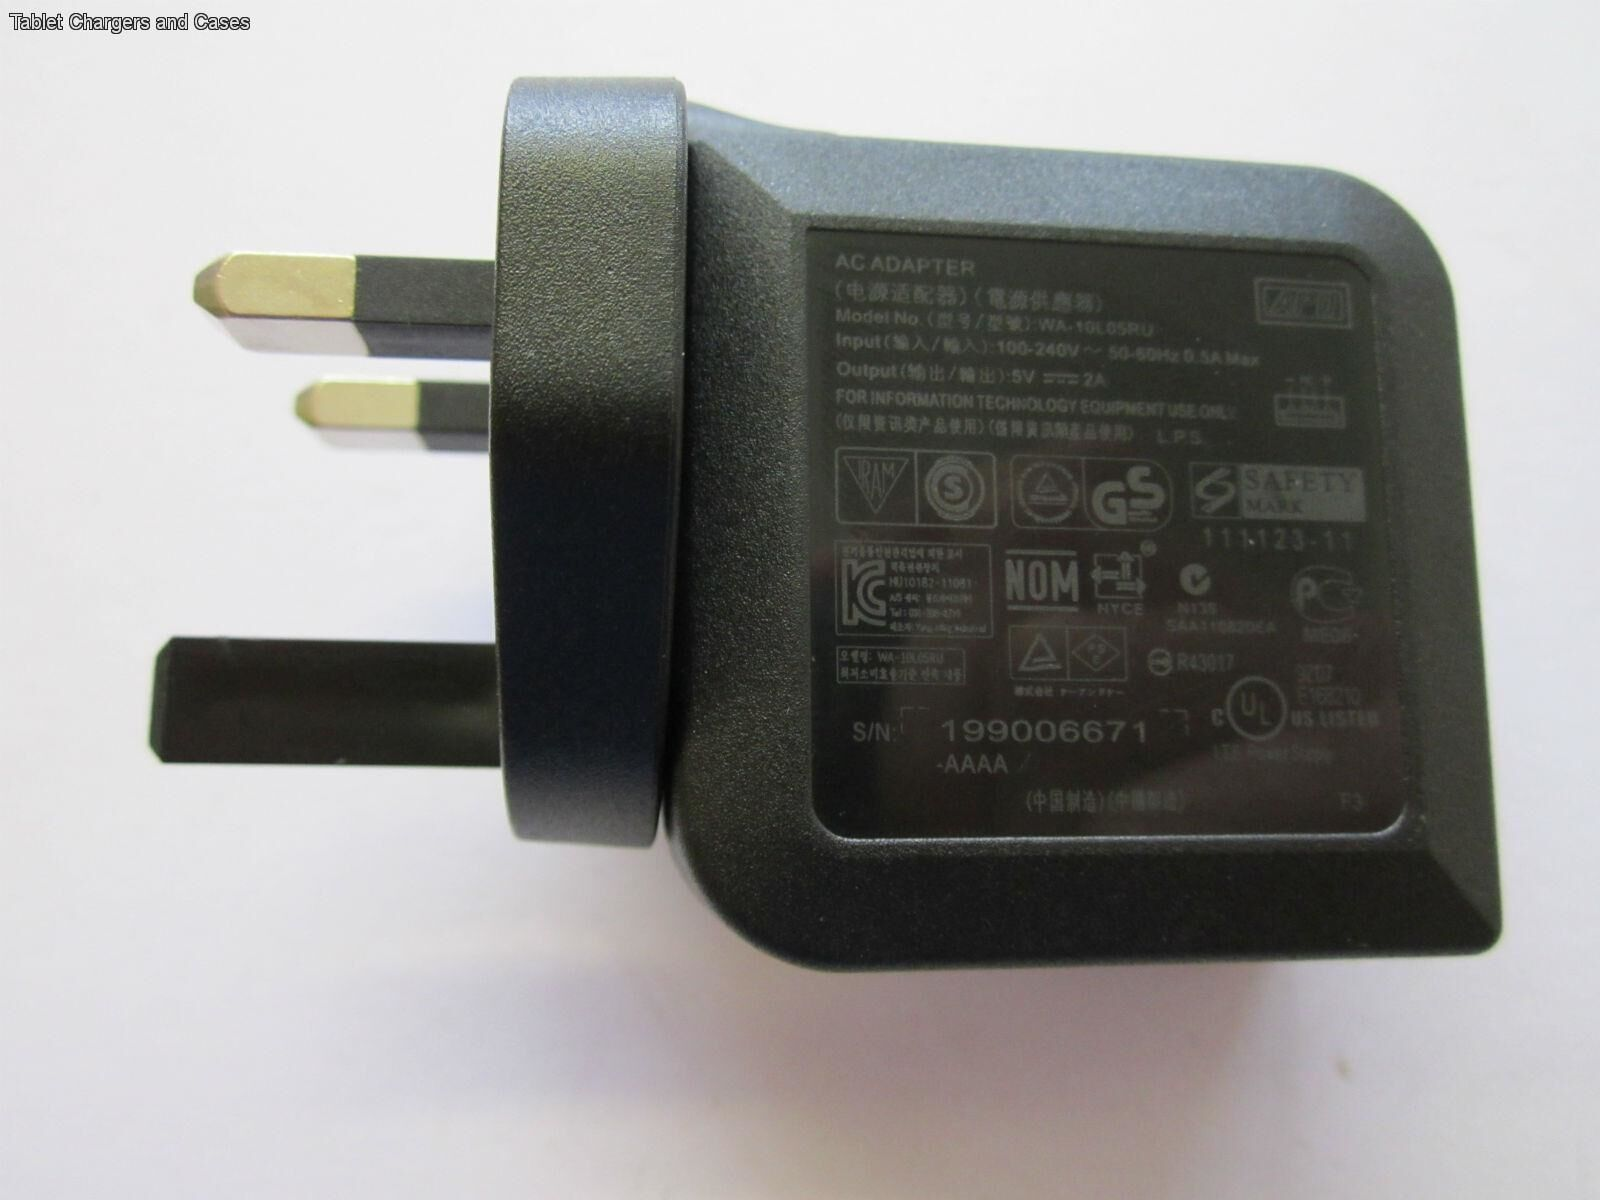 UK 5.0V 2.0A Switching Adapter Charger 4 ASUS Trans4mer Book 10.1 T100T AD835M1